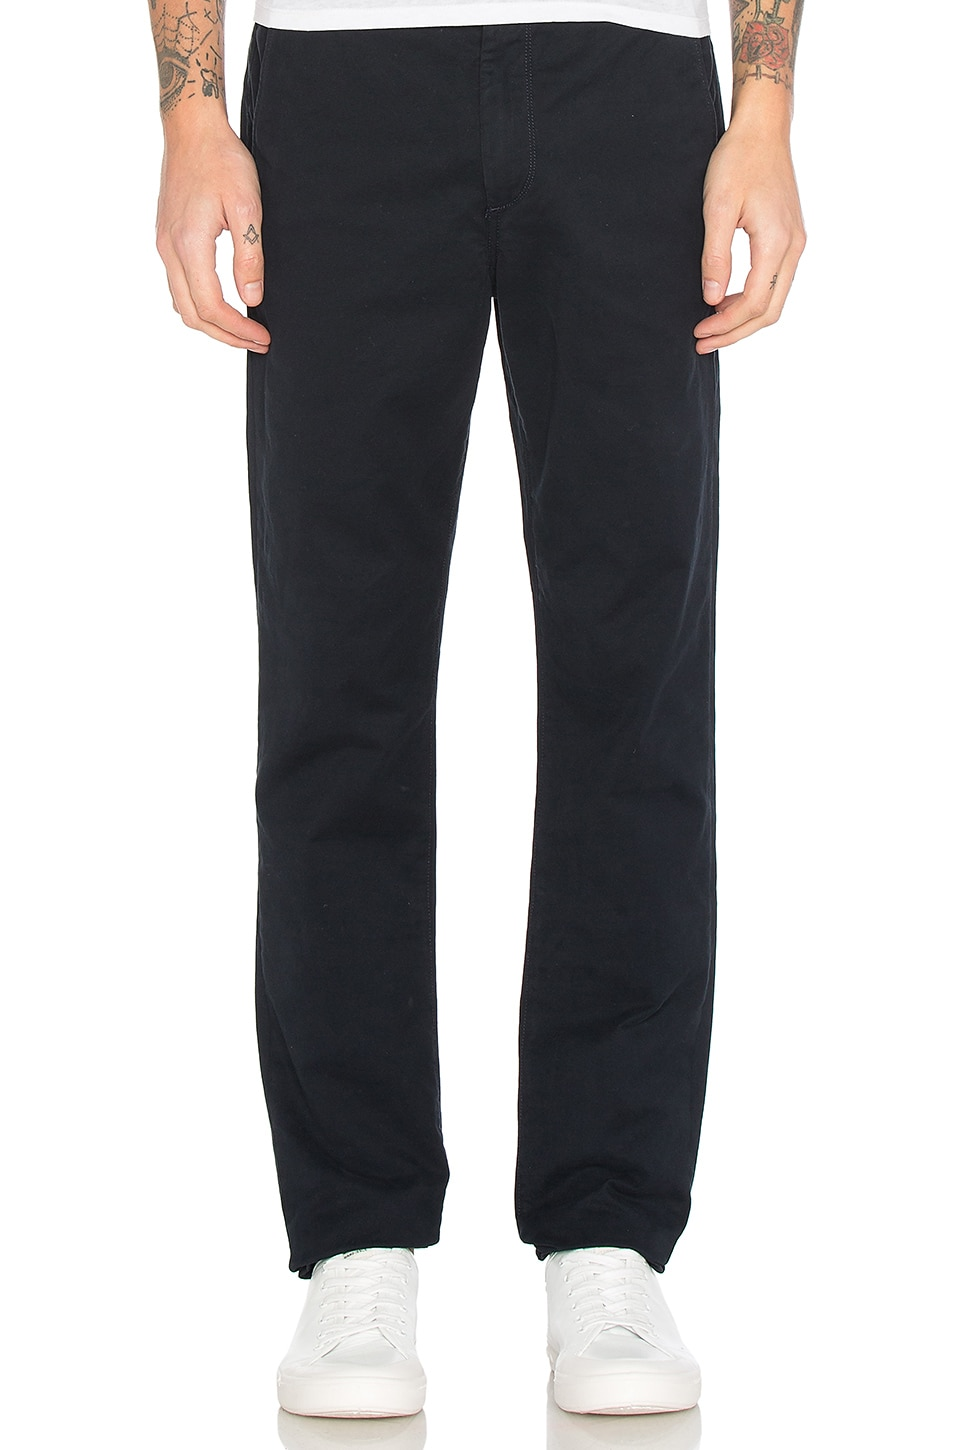 Photo of Fit 2 Chinos by Rag & Bone men clothes